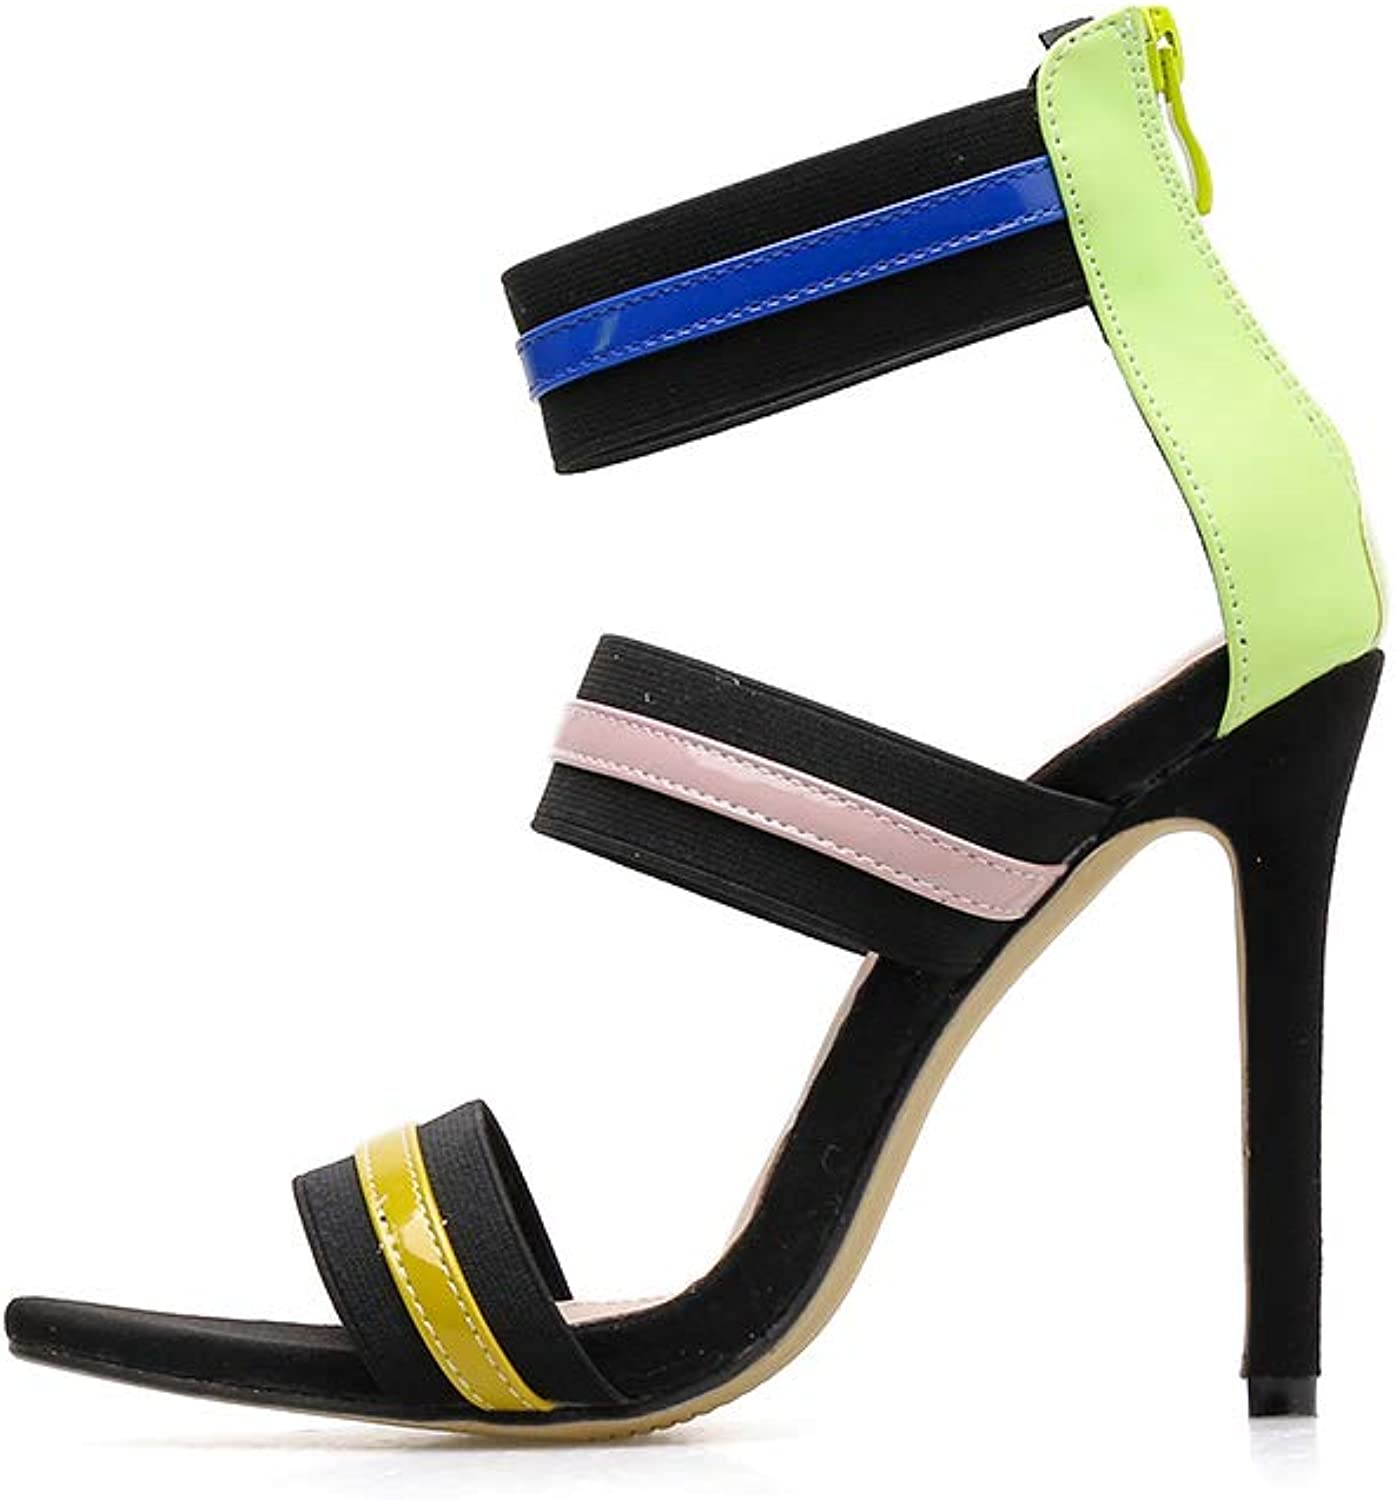 Women's Sandals - Sexy Elasticated Pointed High-Heeled Roman colorblock Nightclub Women's shoes